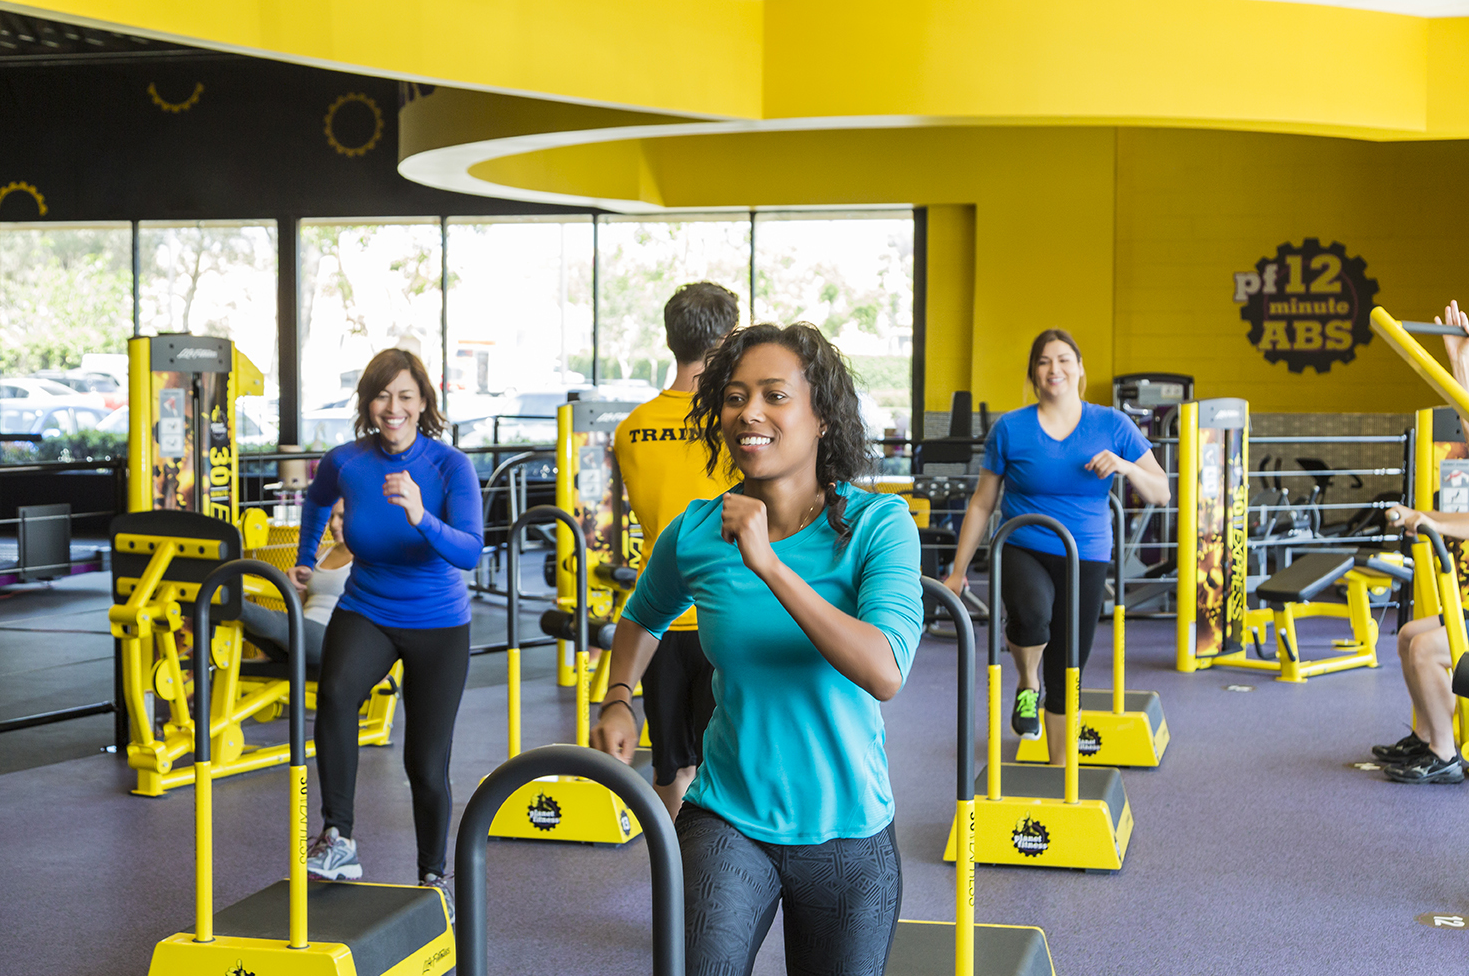 a81b7e6ae4 Join Planet Fitness For Just  1! (On April 4th Only)